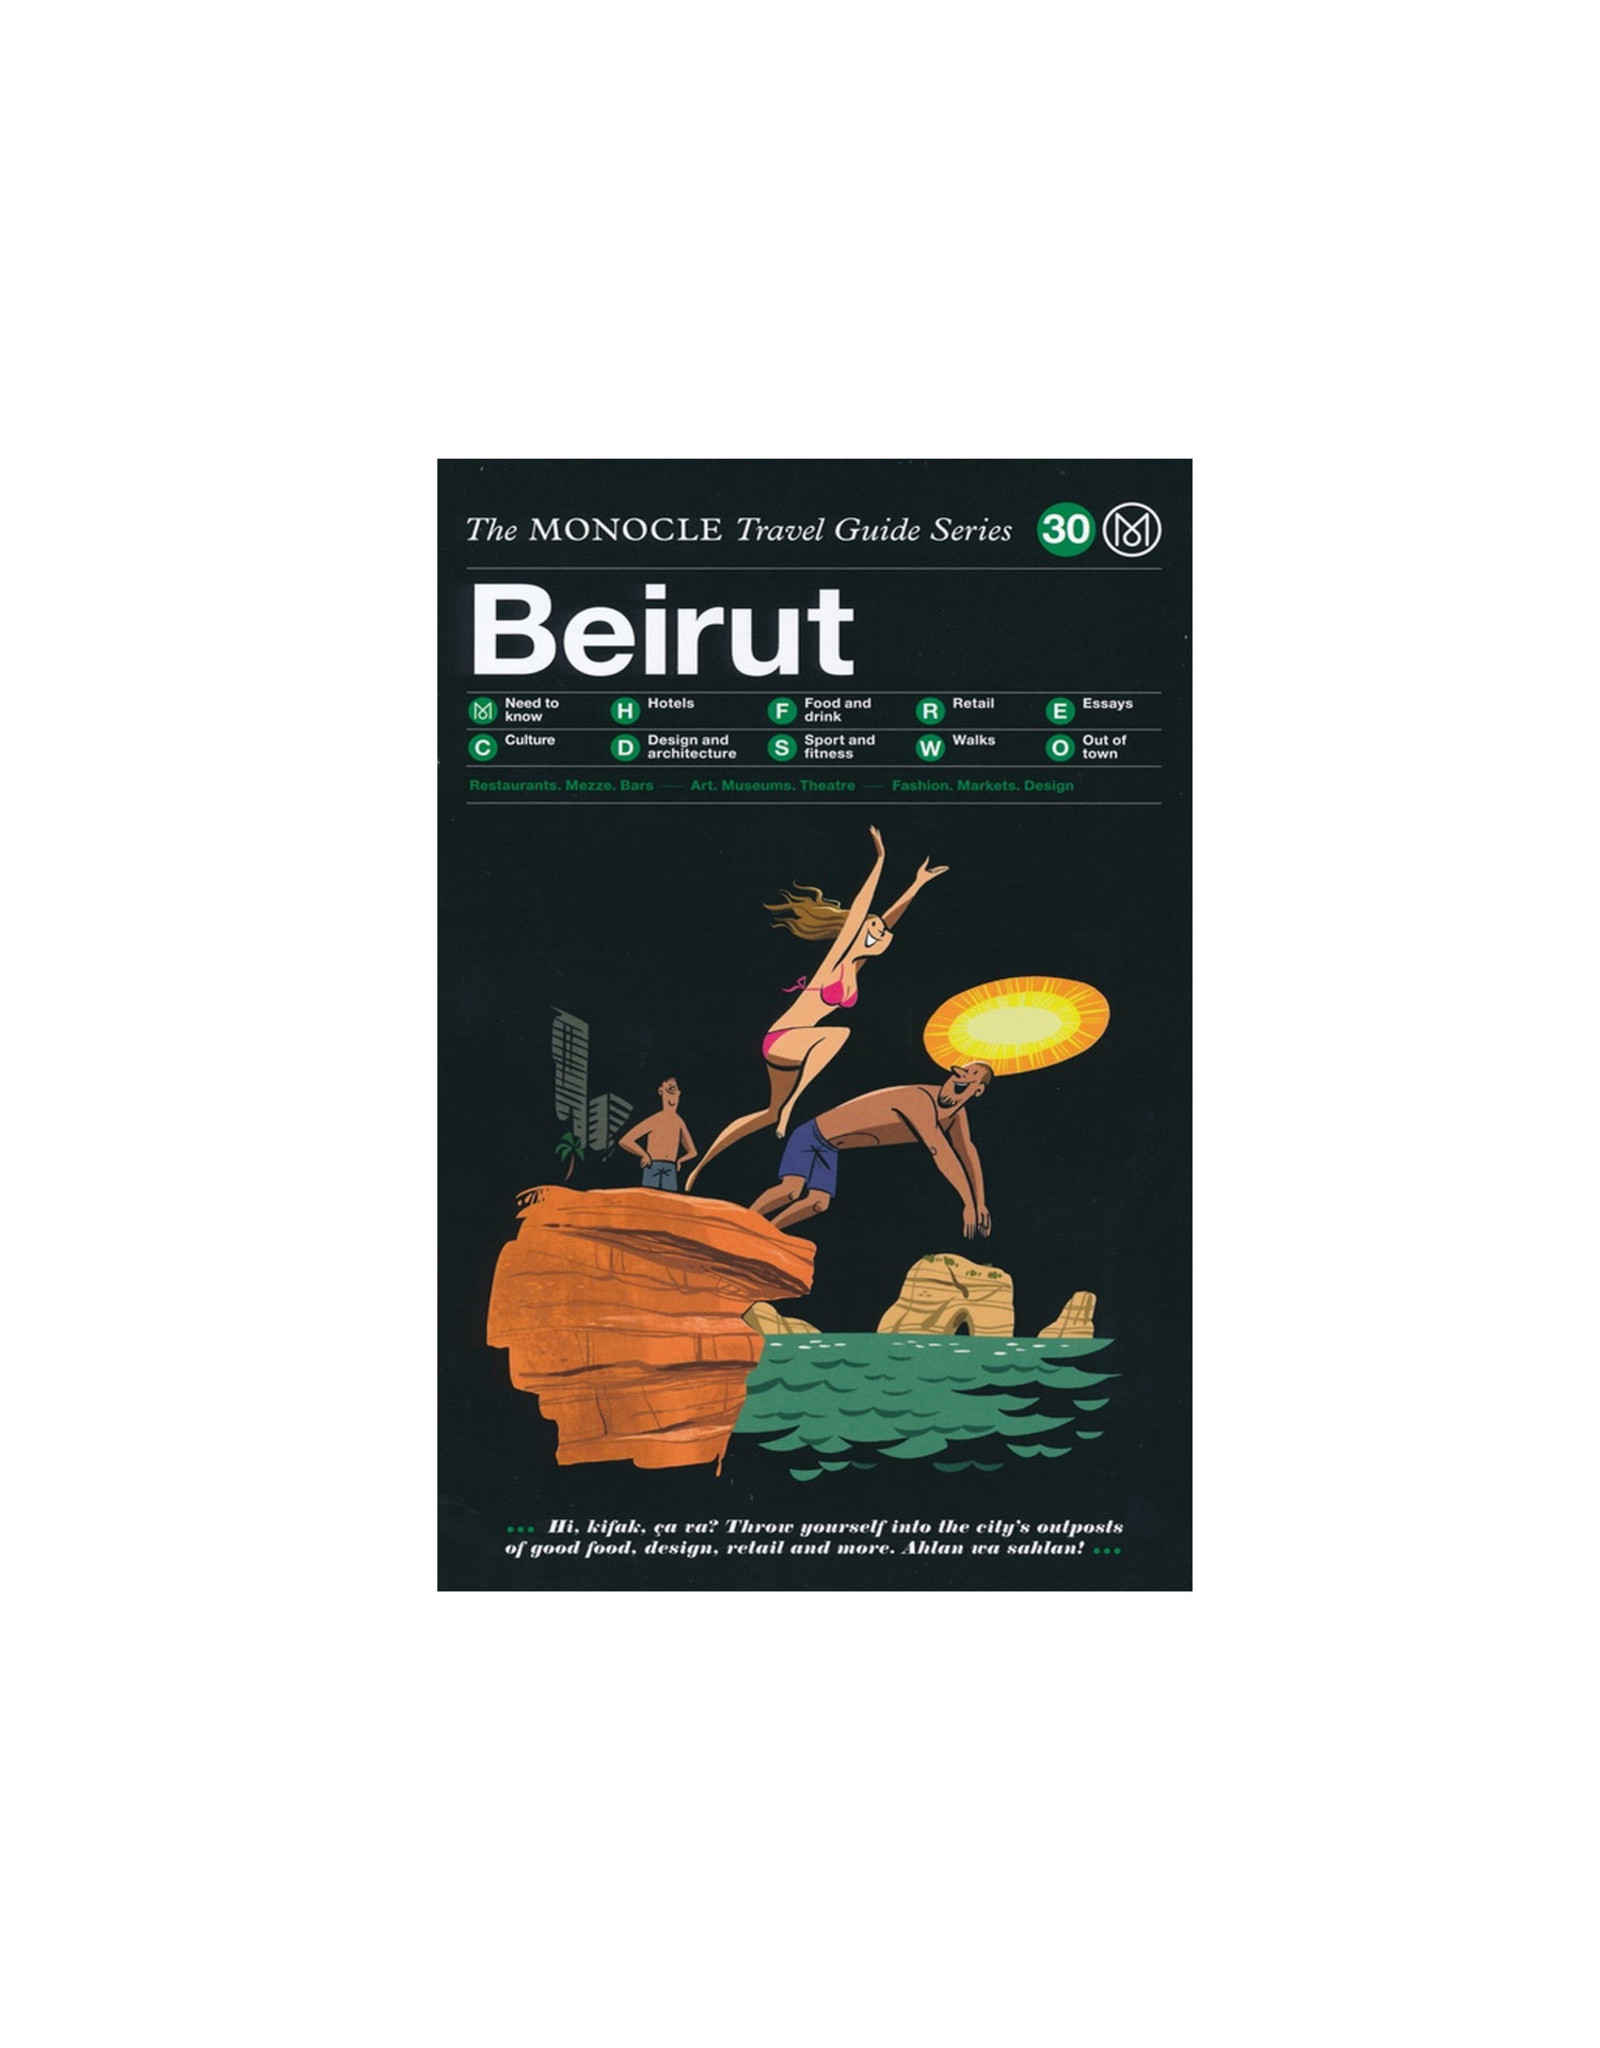 Monocle Travel Guide to Beirut: The Monocle Travel Guide Series